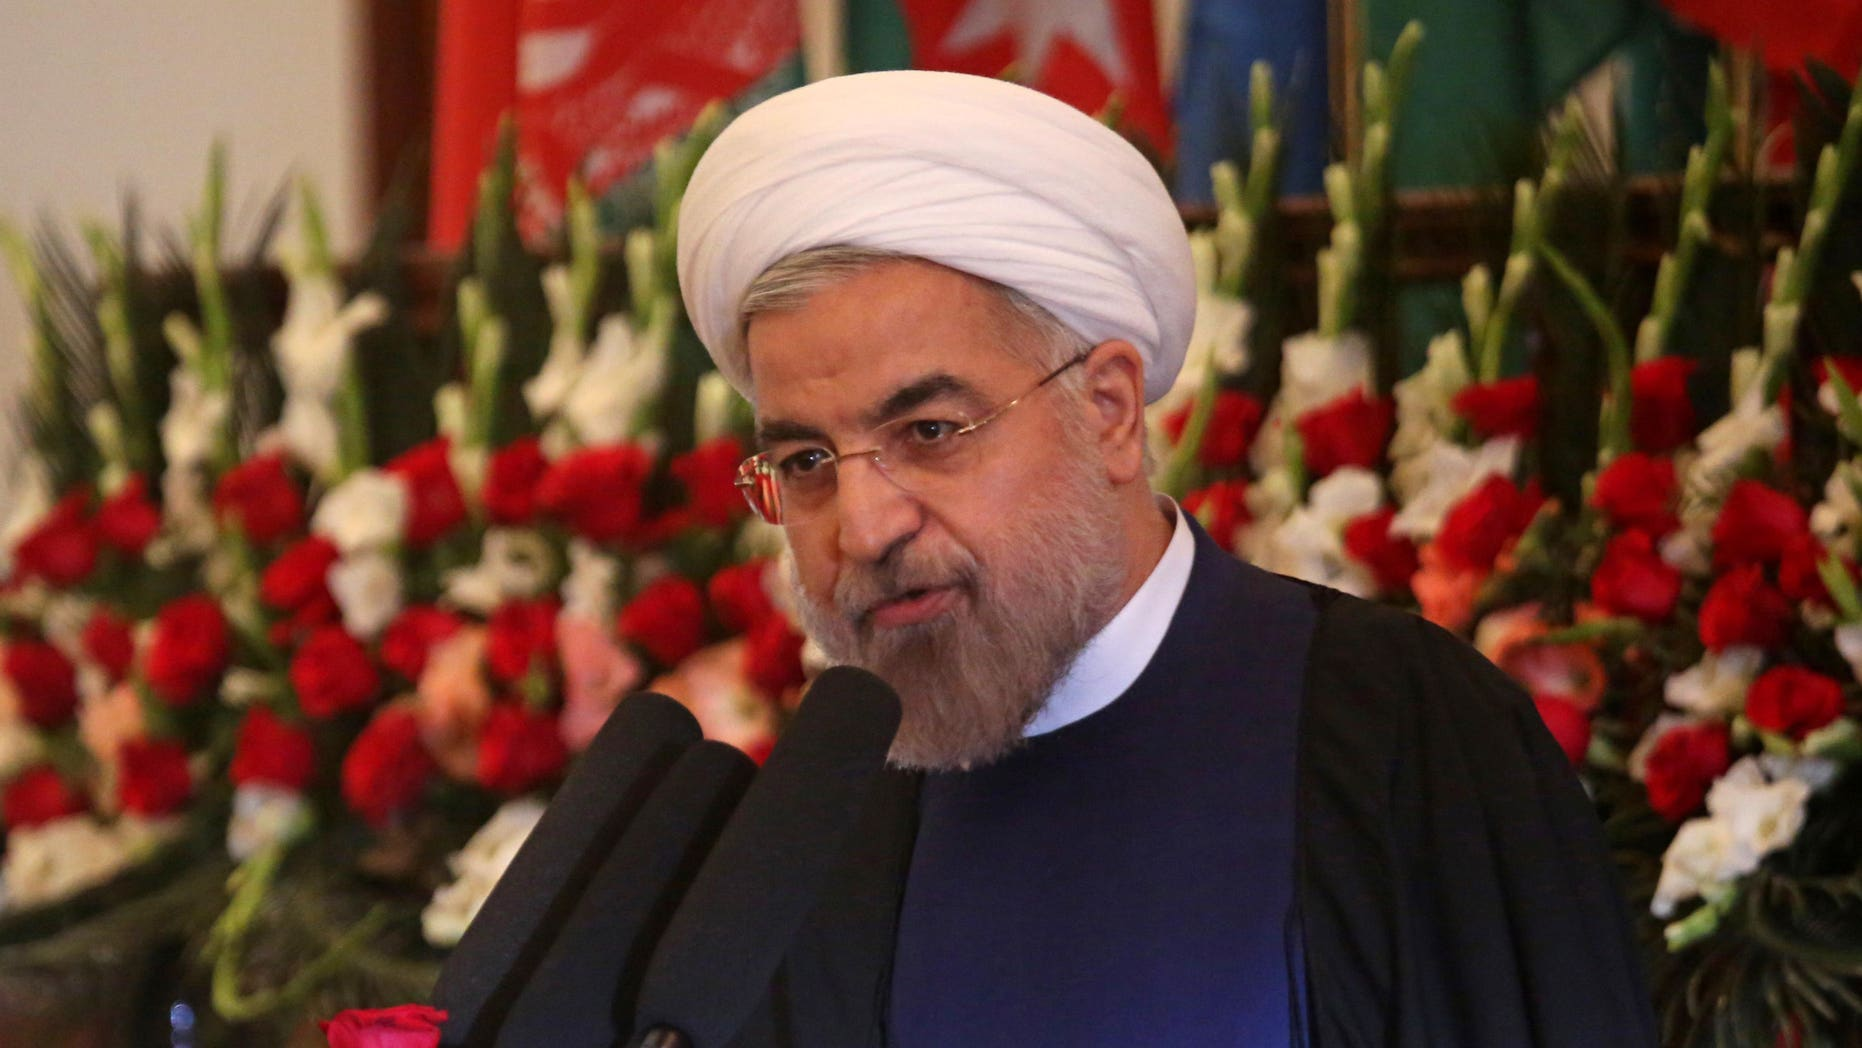 """Iranian President Hasan Rouhani speaks during a ceremony celebrating the Persian New Year, Nowruz at the presidential palace in Kabul, Afghanistan, Thursday, March 27, 2014. In his first visit to Afghanistan as Iran's president, Rouhani has called for regional unity while at the same time saying international forces brought """"destruction"""" to Afghanistan. (AP Photo/Massoud Hossaini)"""